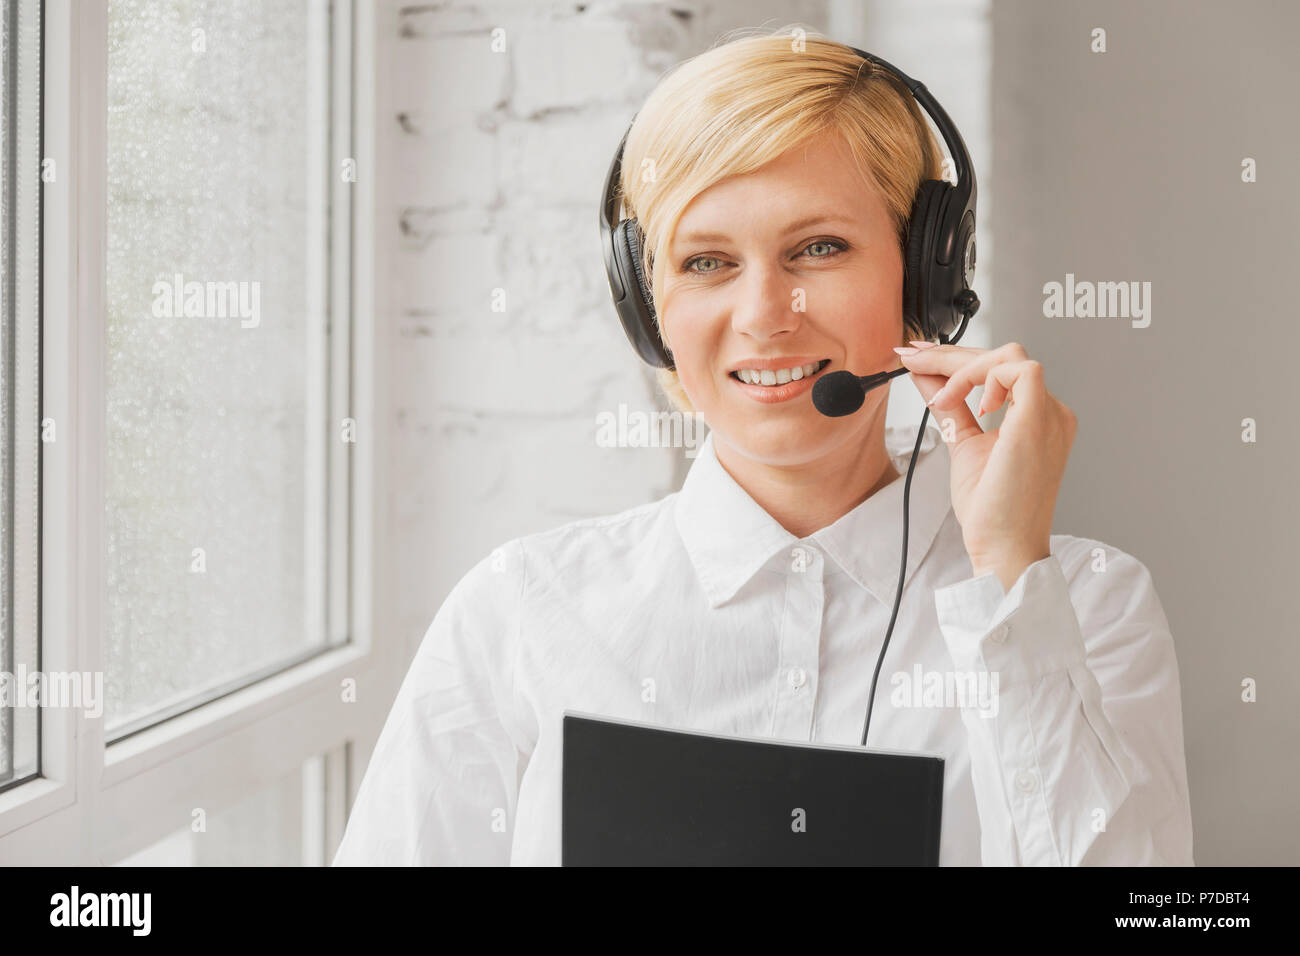 Blonde online consultant woman wears black earphones headset consulting customers standing near rainy window in white office - Stock Image